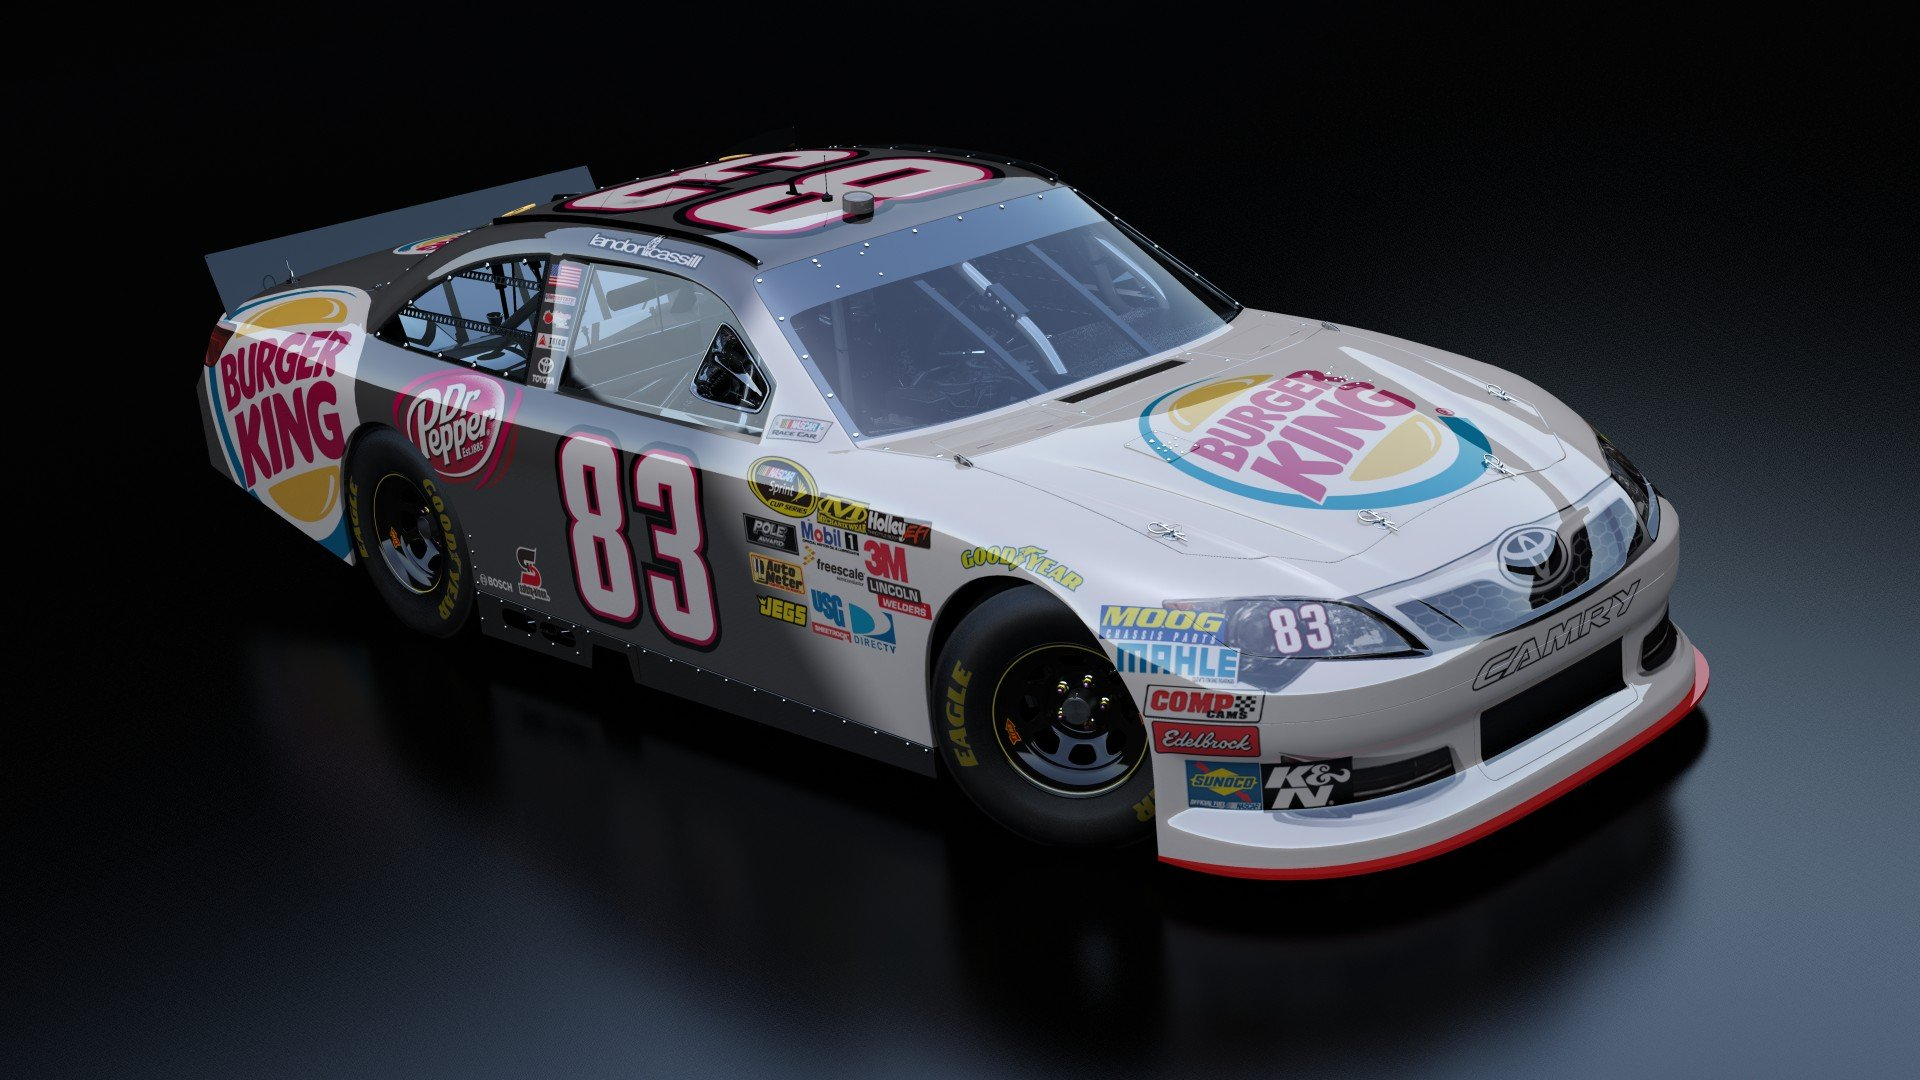 83_LANDON_CASSILL